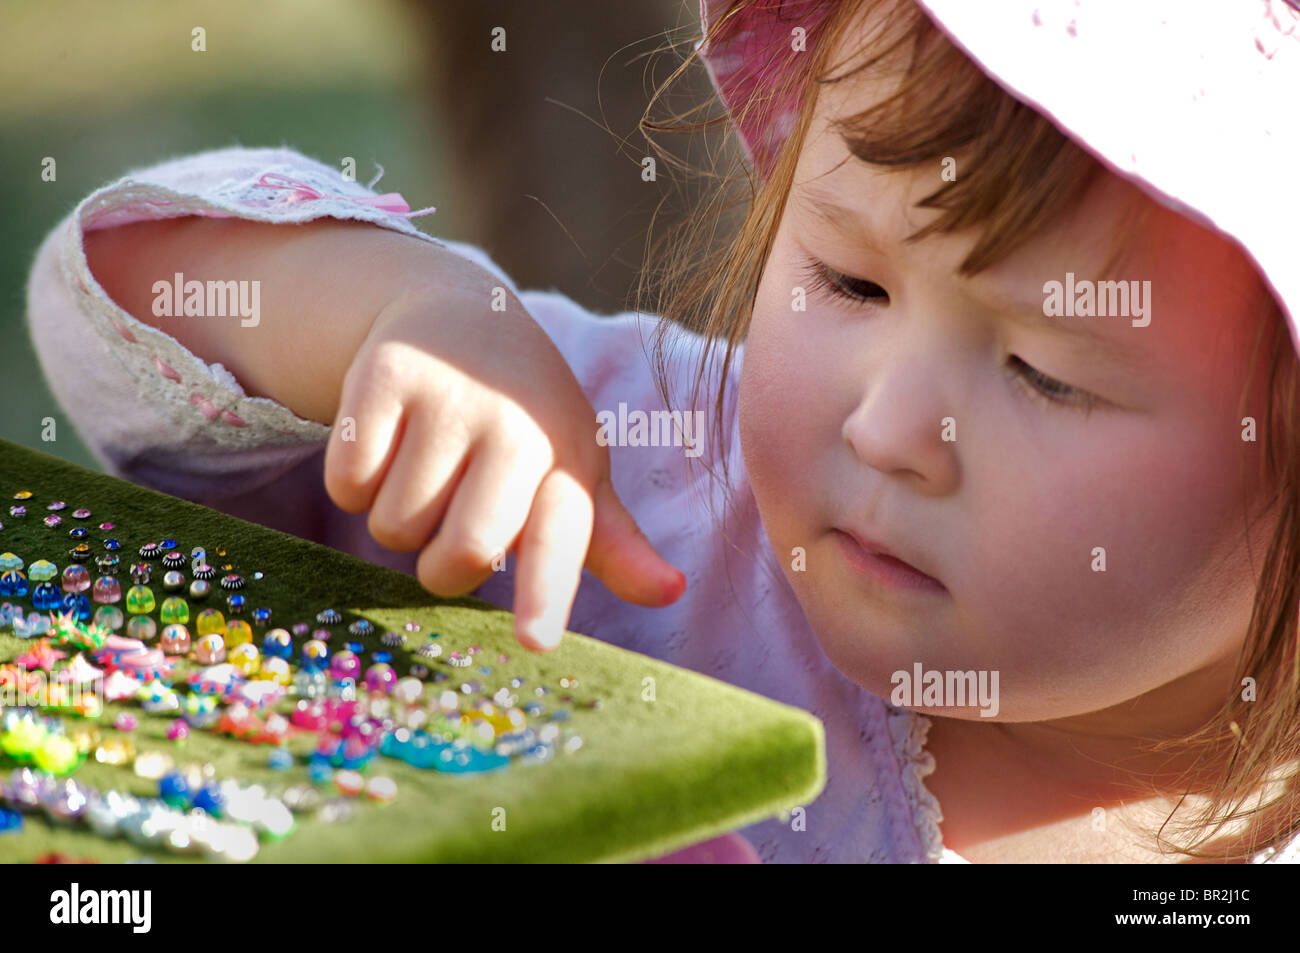 MODEL RELEASED. Young girl aged 2 admiring jewellery on a market stall - Stock Image